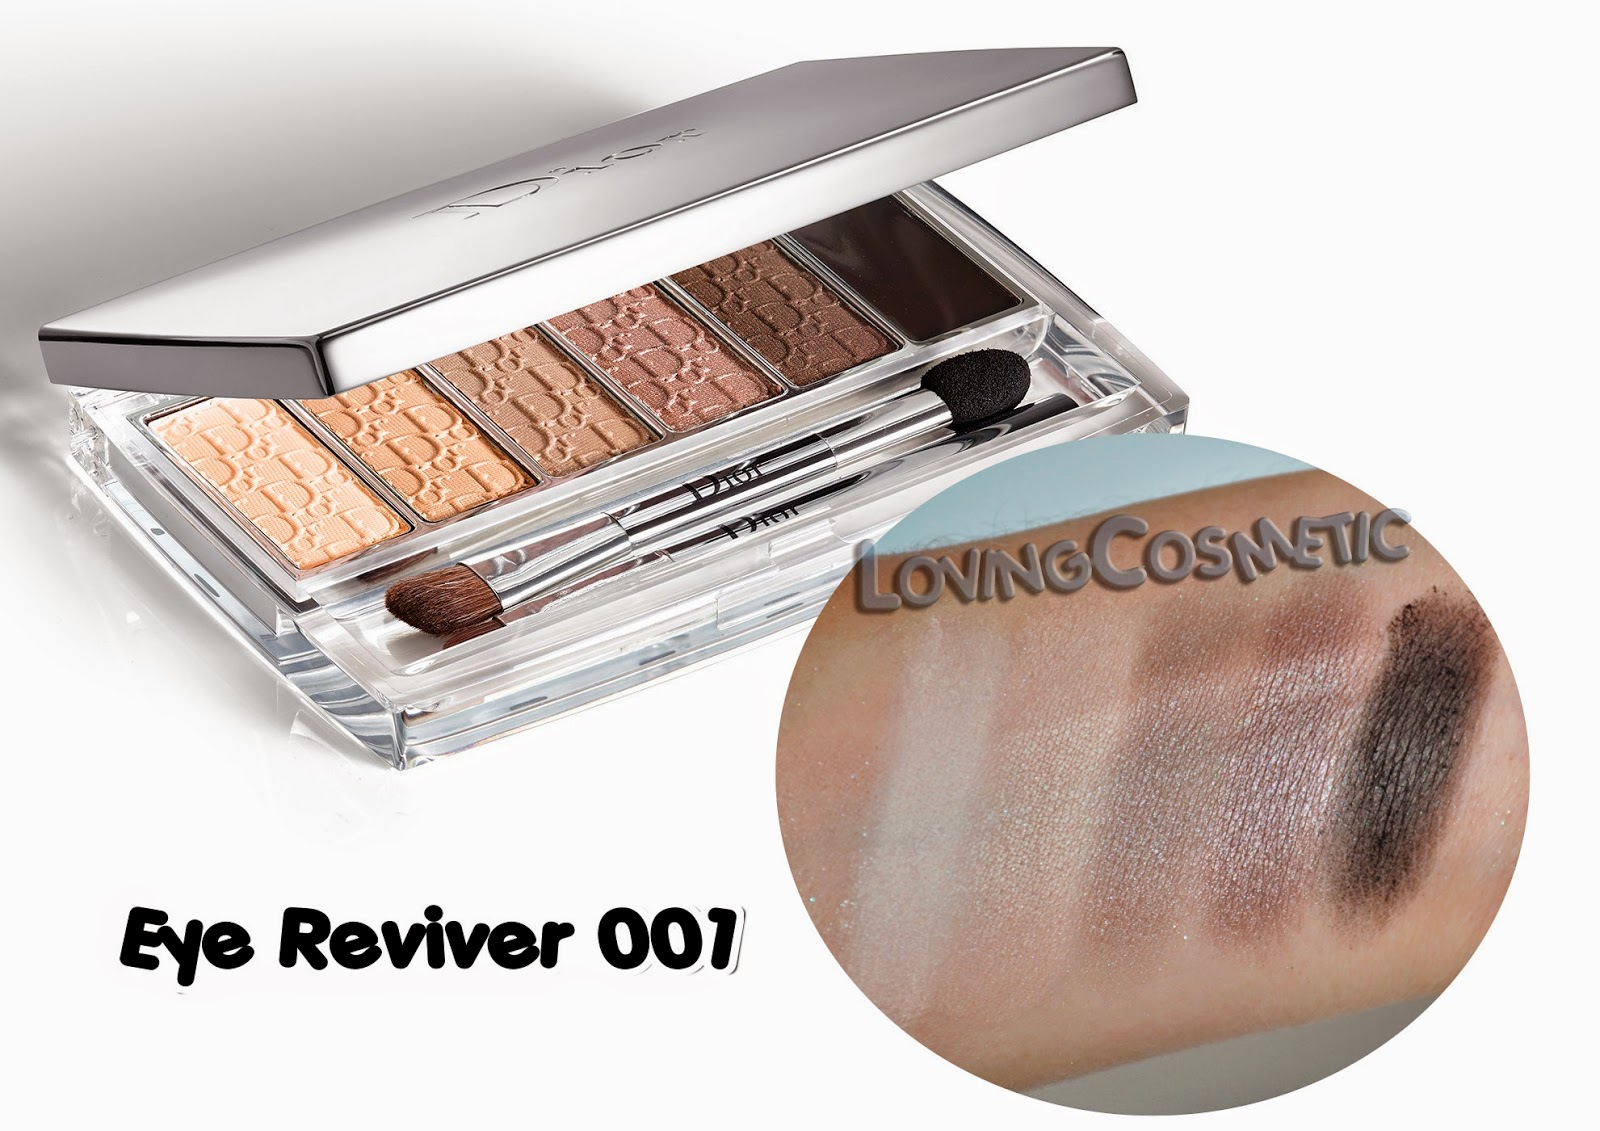 Dior Tie & Dye coleccion collection 2015 summer verano swatch swatches eye reviver 001